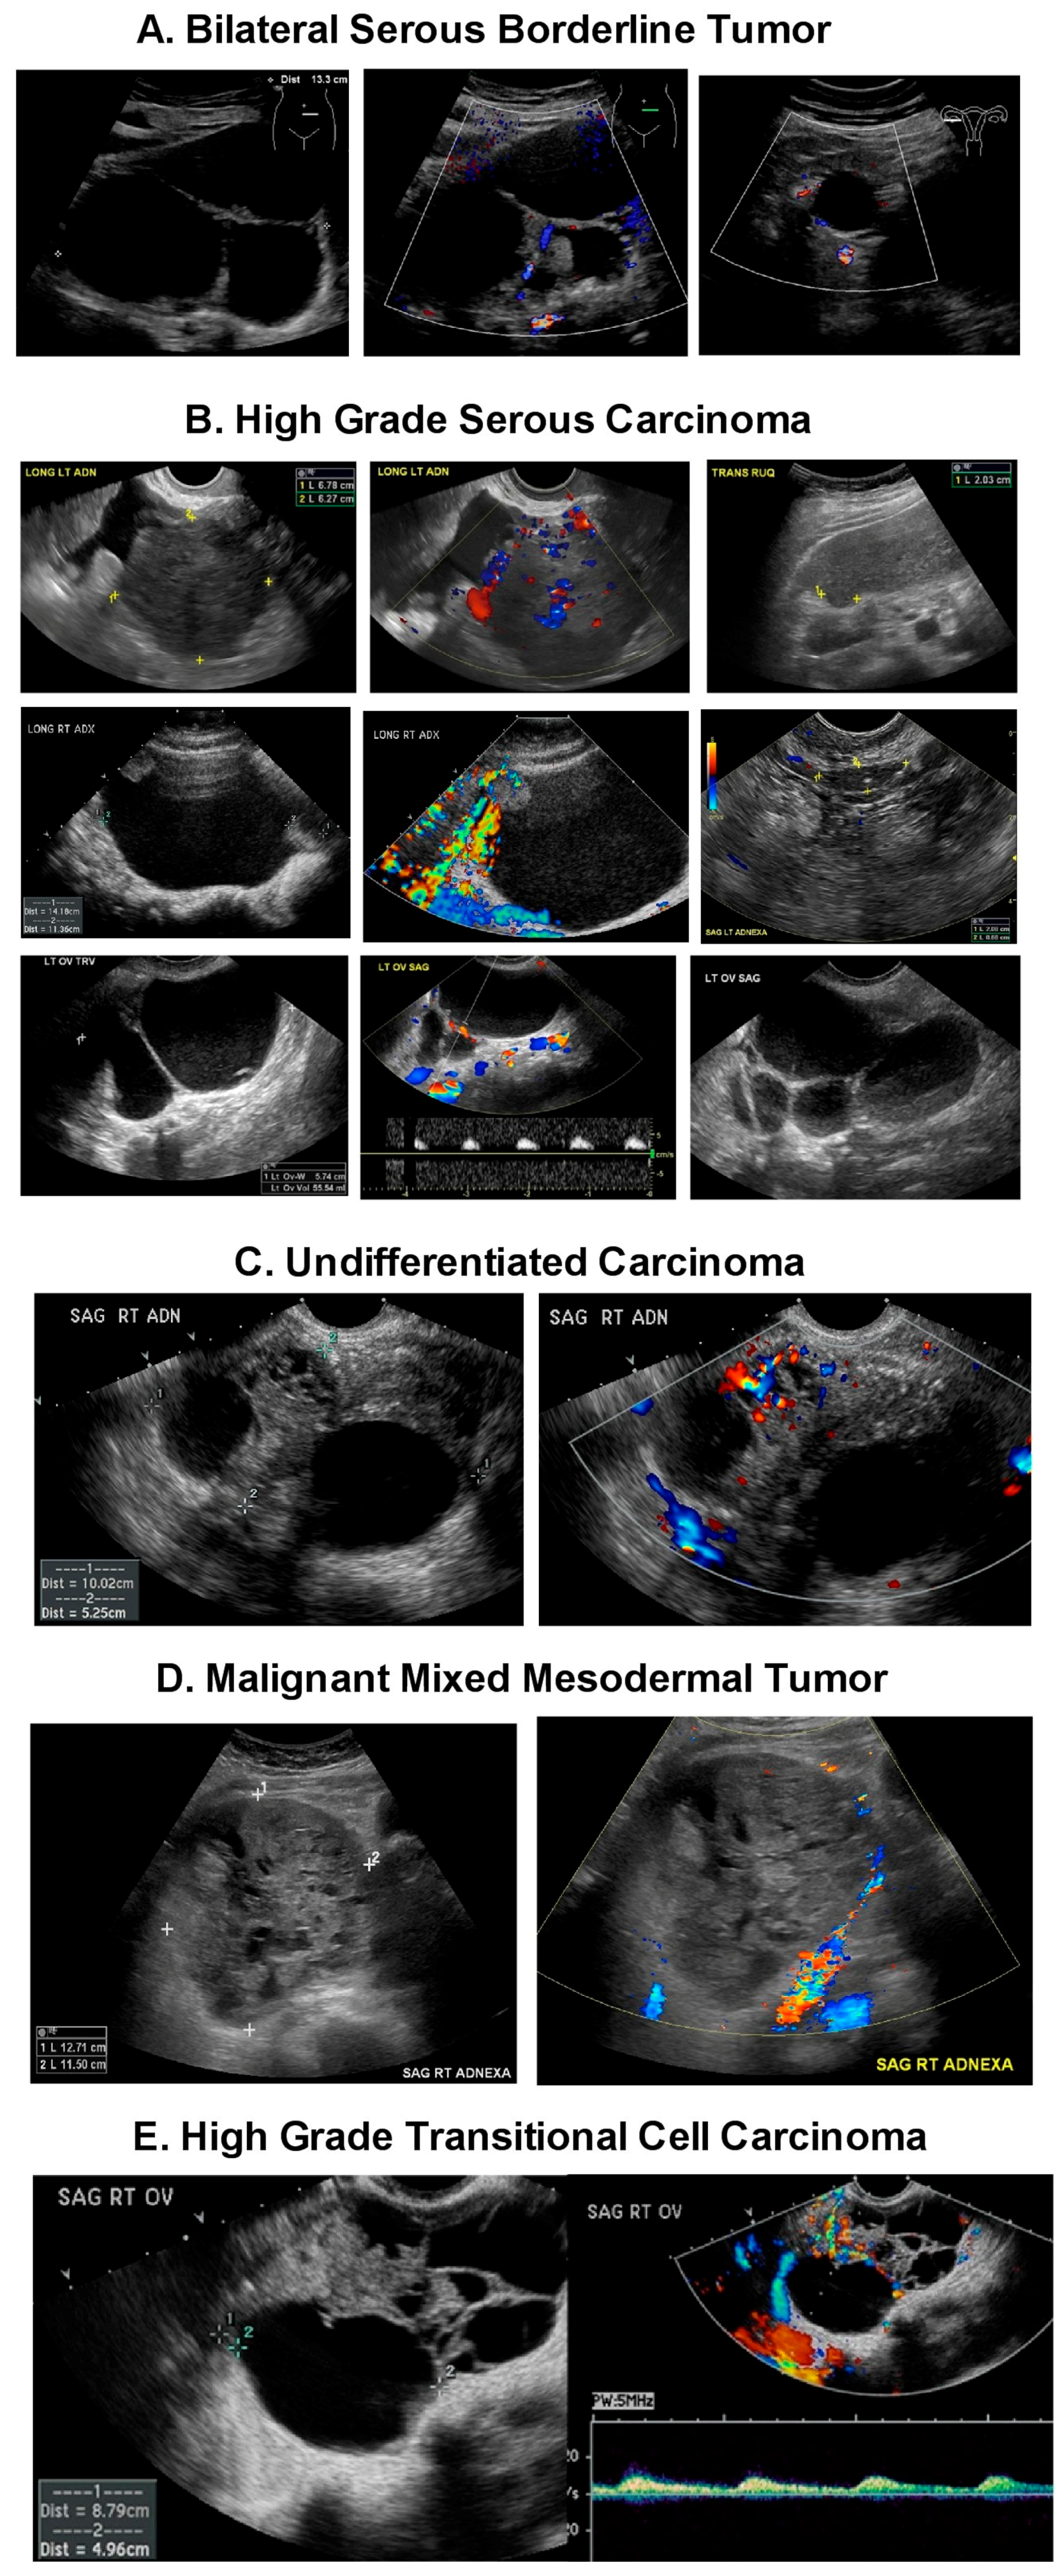 Diagnostics Free Full Text Ultrasound Monitoring Of Extant Adnexal Masses In The Era Of Type 1 And Type 2 Ovarian Cancers Lessons Learned From Ovarian Cancer Screening Trials Html